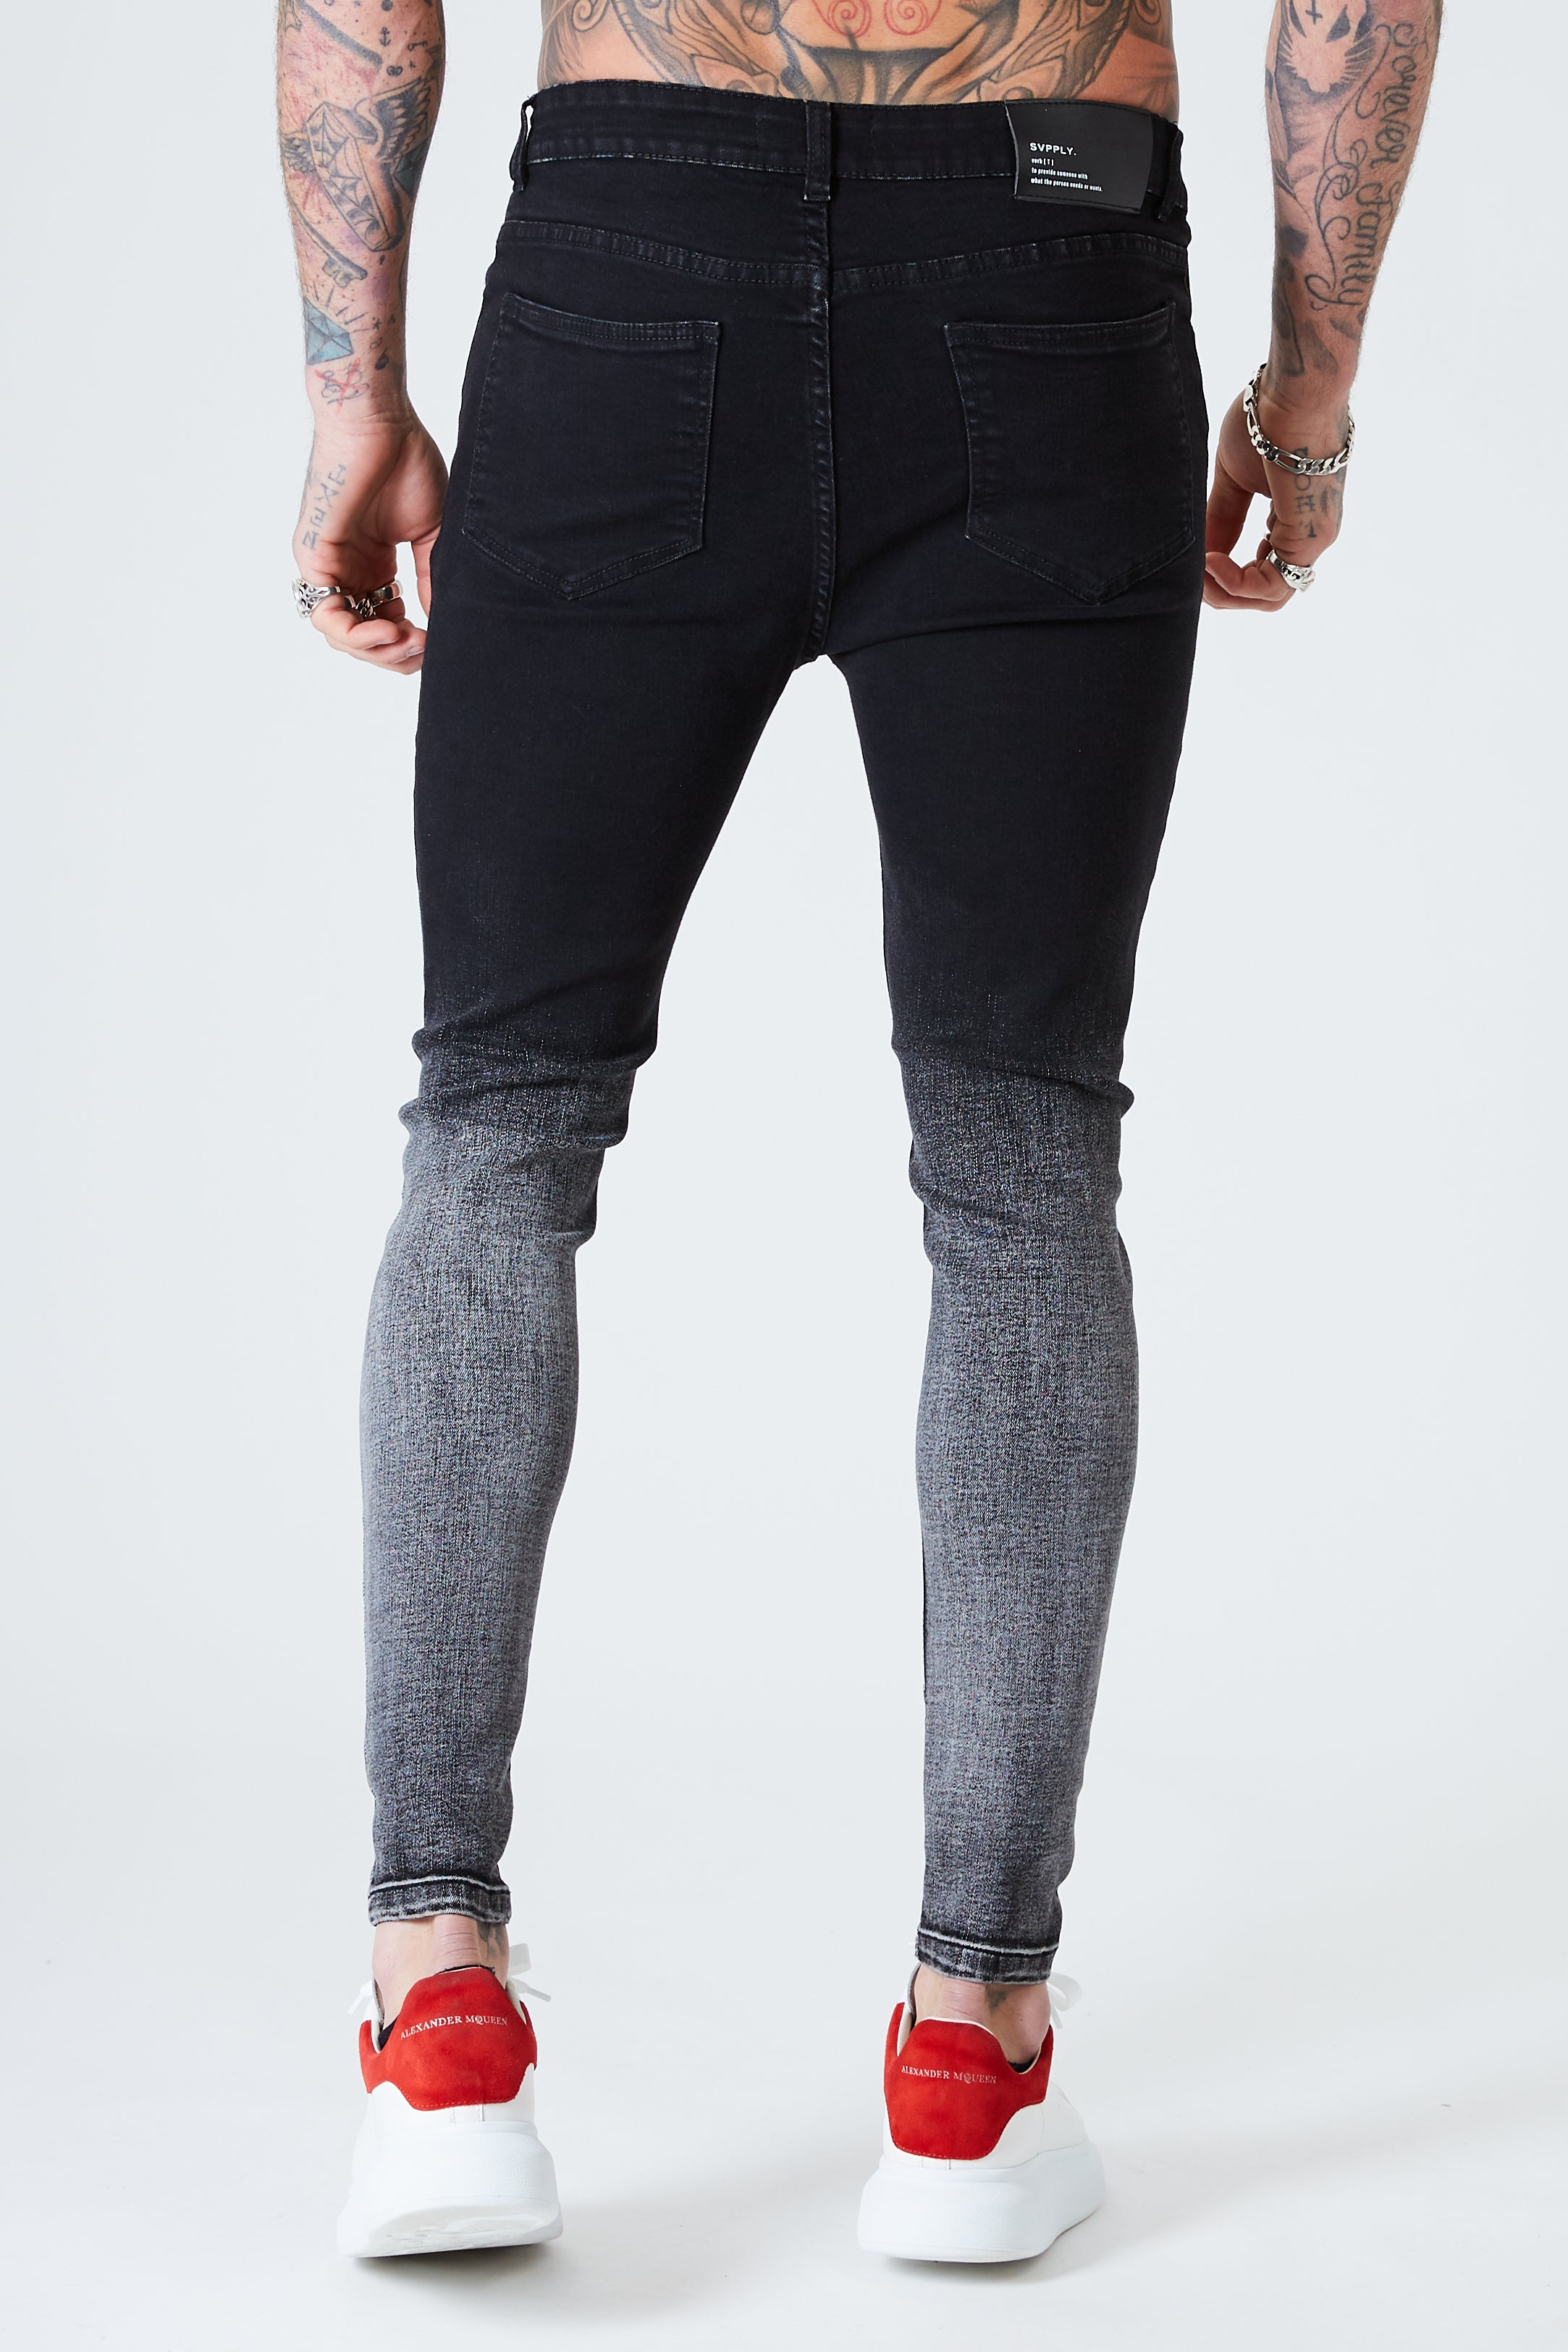 Spray on Skinny Jeans - Black Dip Fade - SVPPLY. STUDIOS